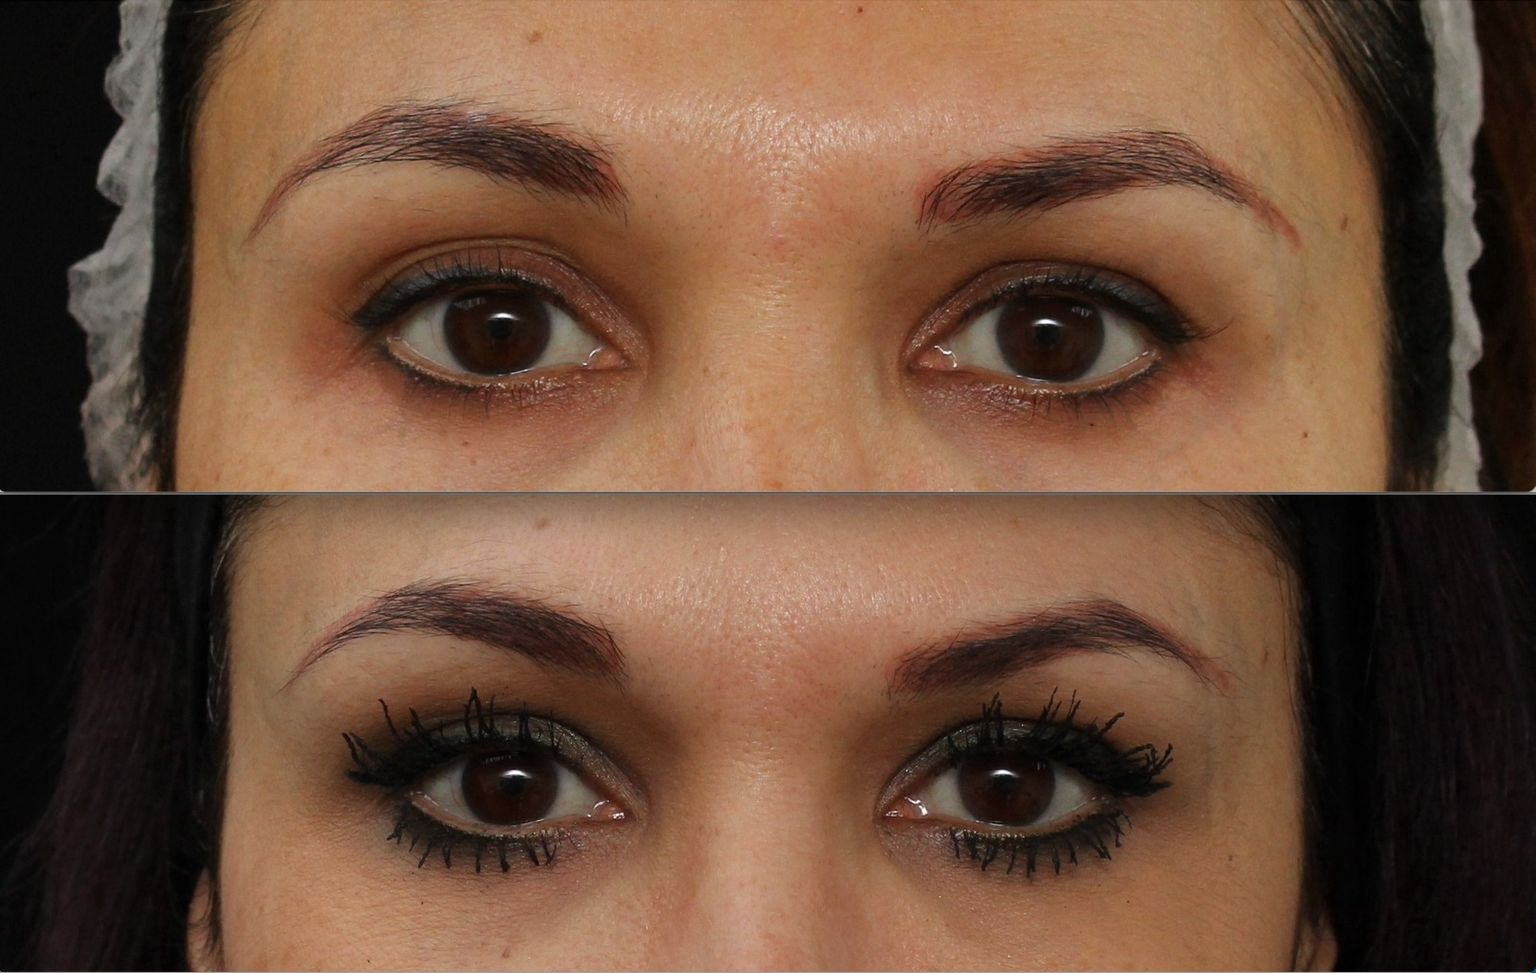 Dr Manav Bawa - temple filler before and after